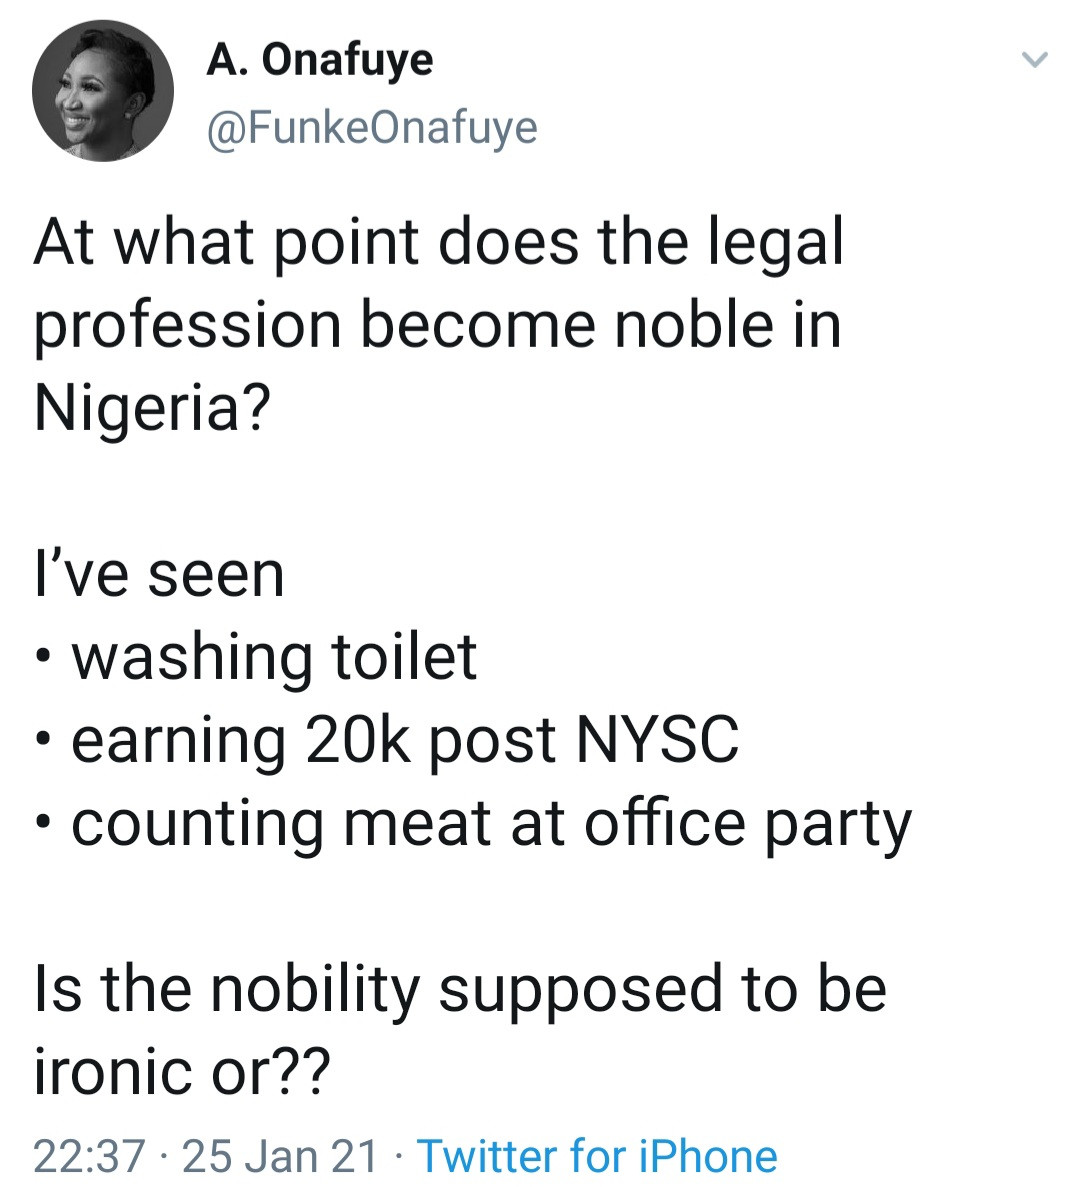 Nigerian lawyers lament low pay and poor treatment as they share their experiences on Twitter